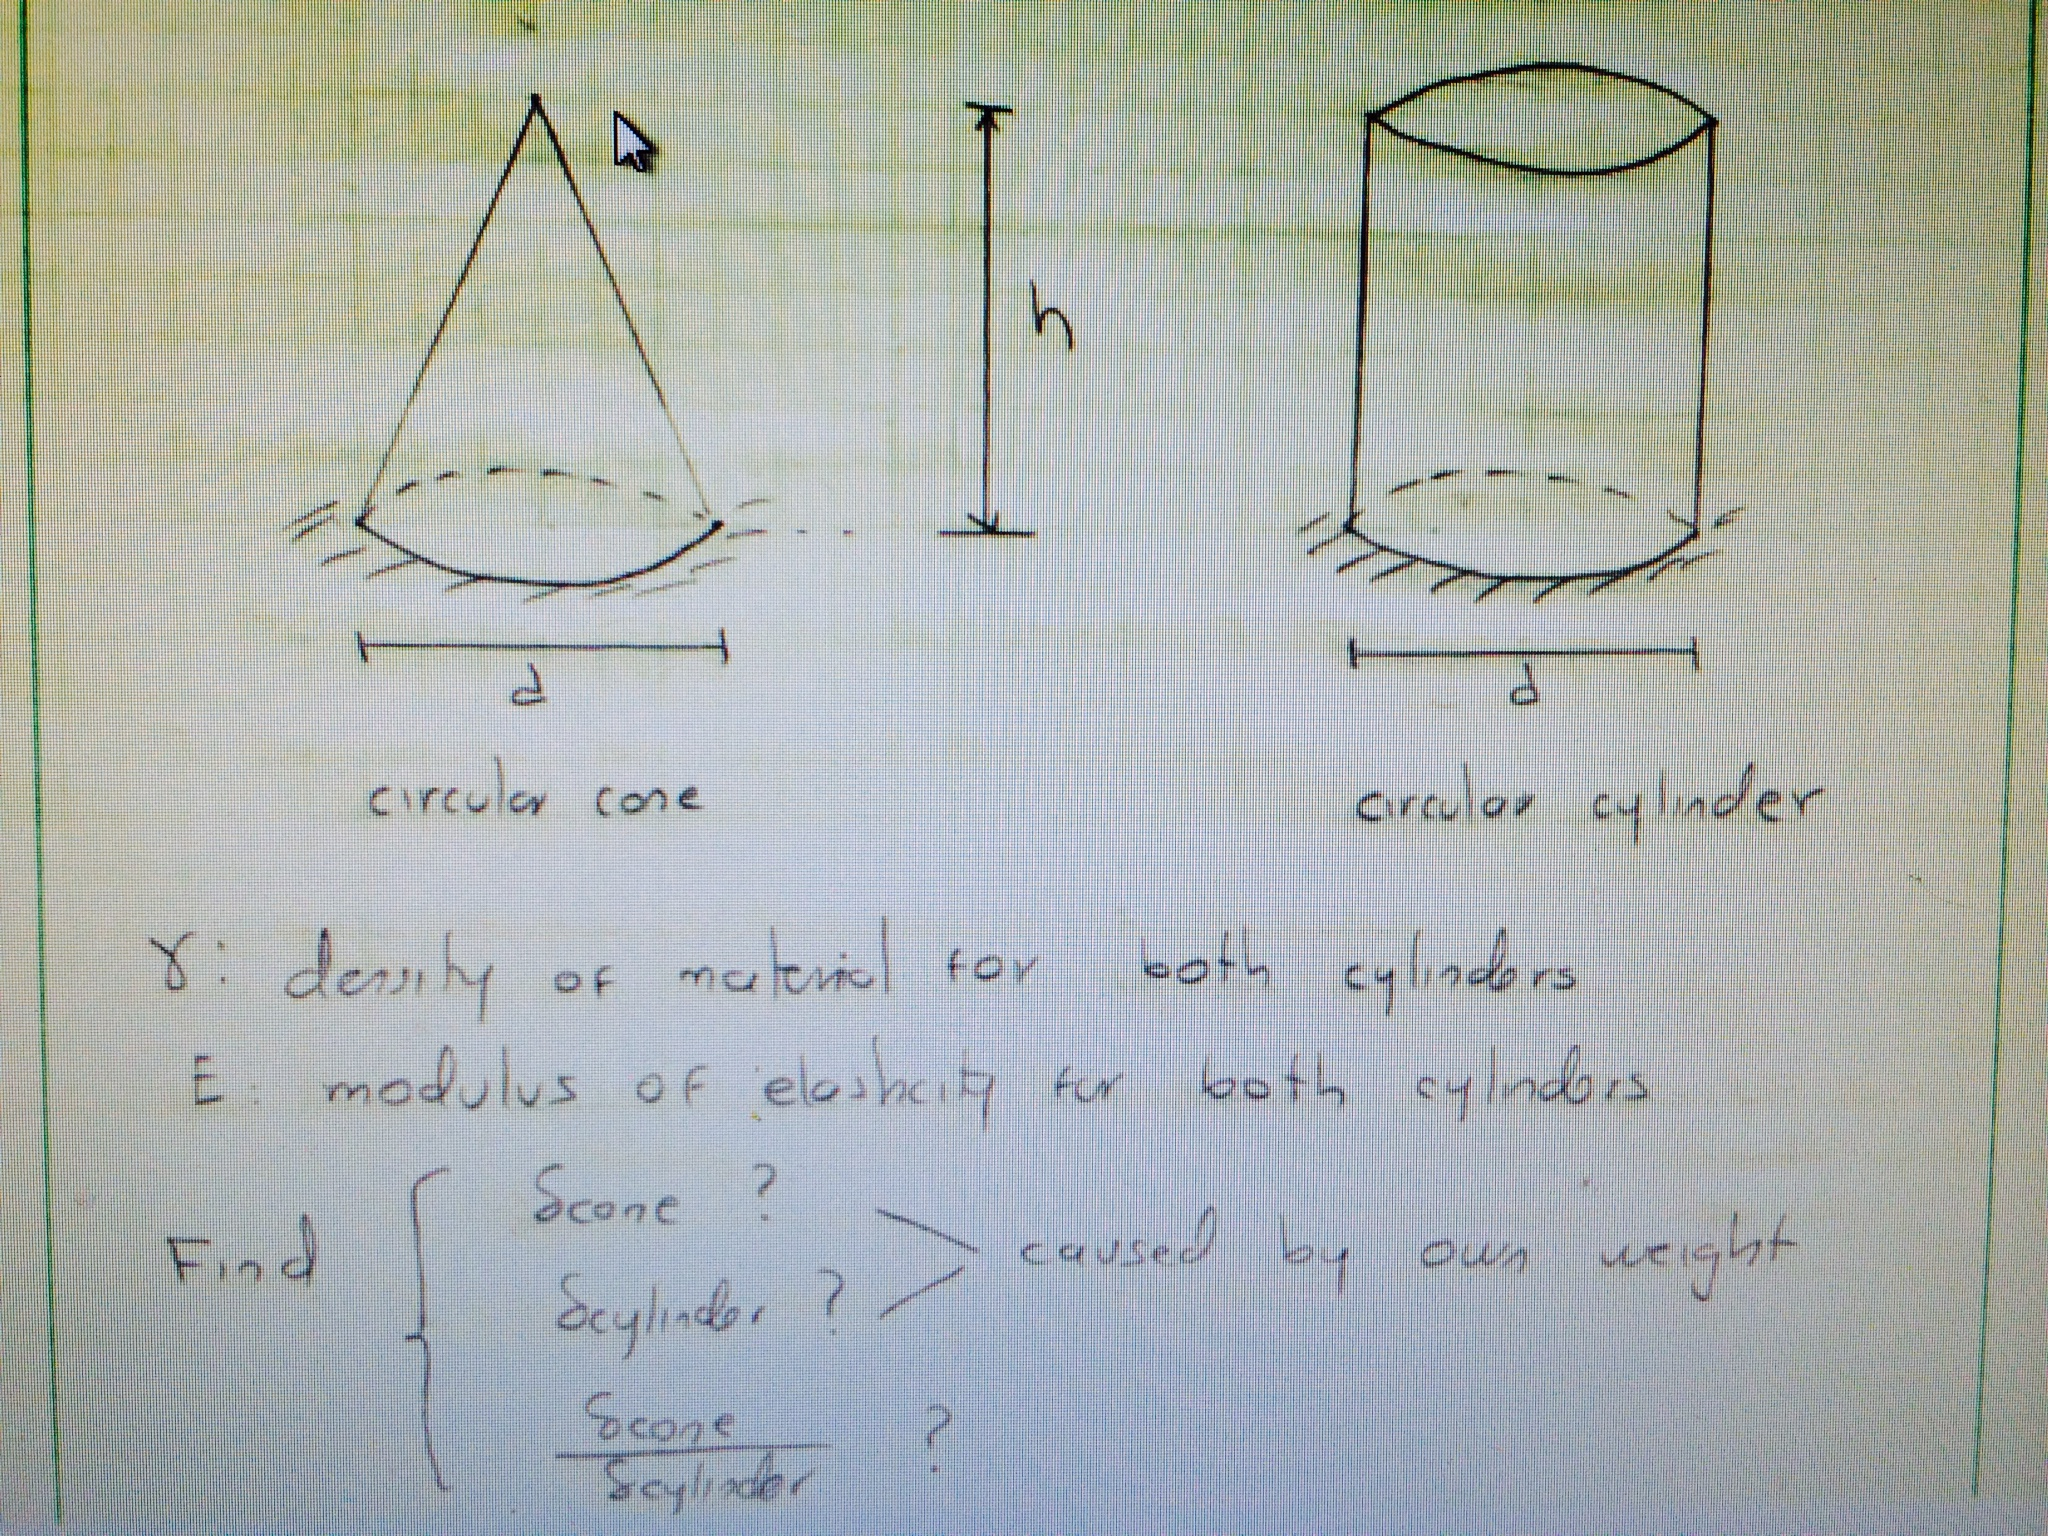 Circular cone circular cylinder r density of mate chegg question circular cone circular cylinder r density of material for both cylinders e modulus of elasti sciox Images